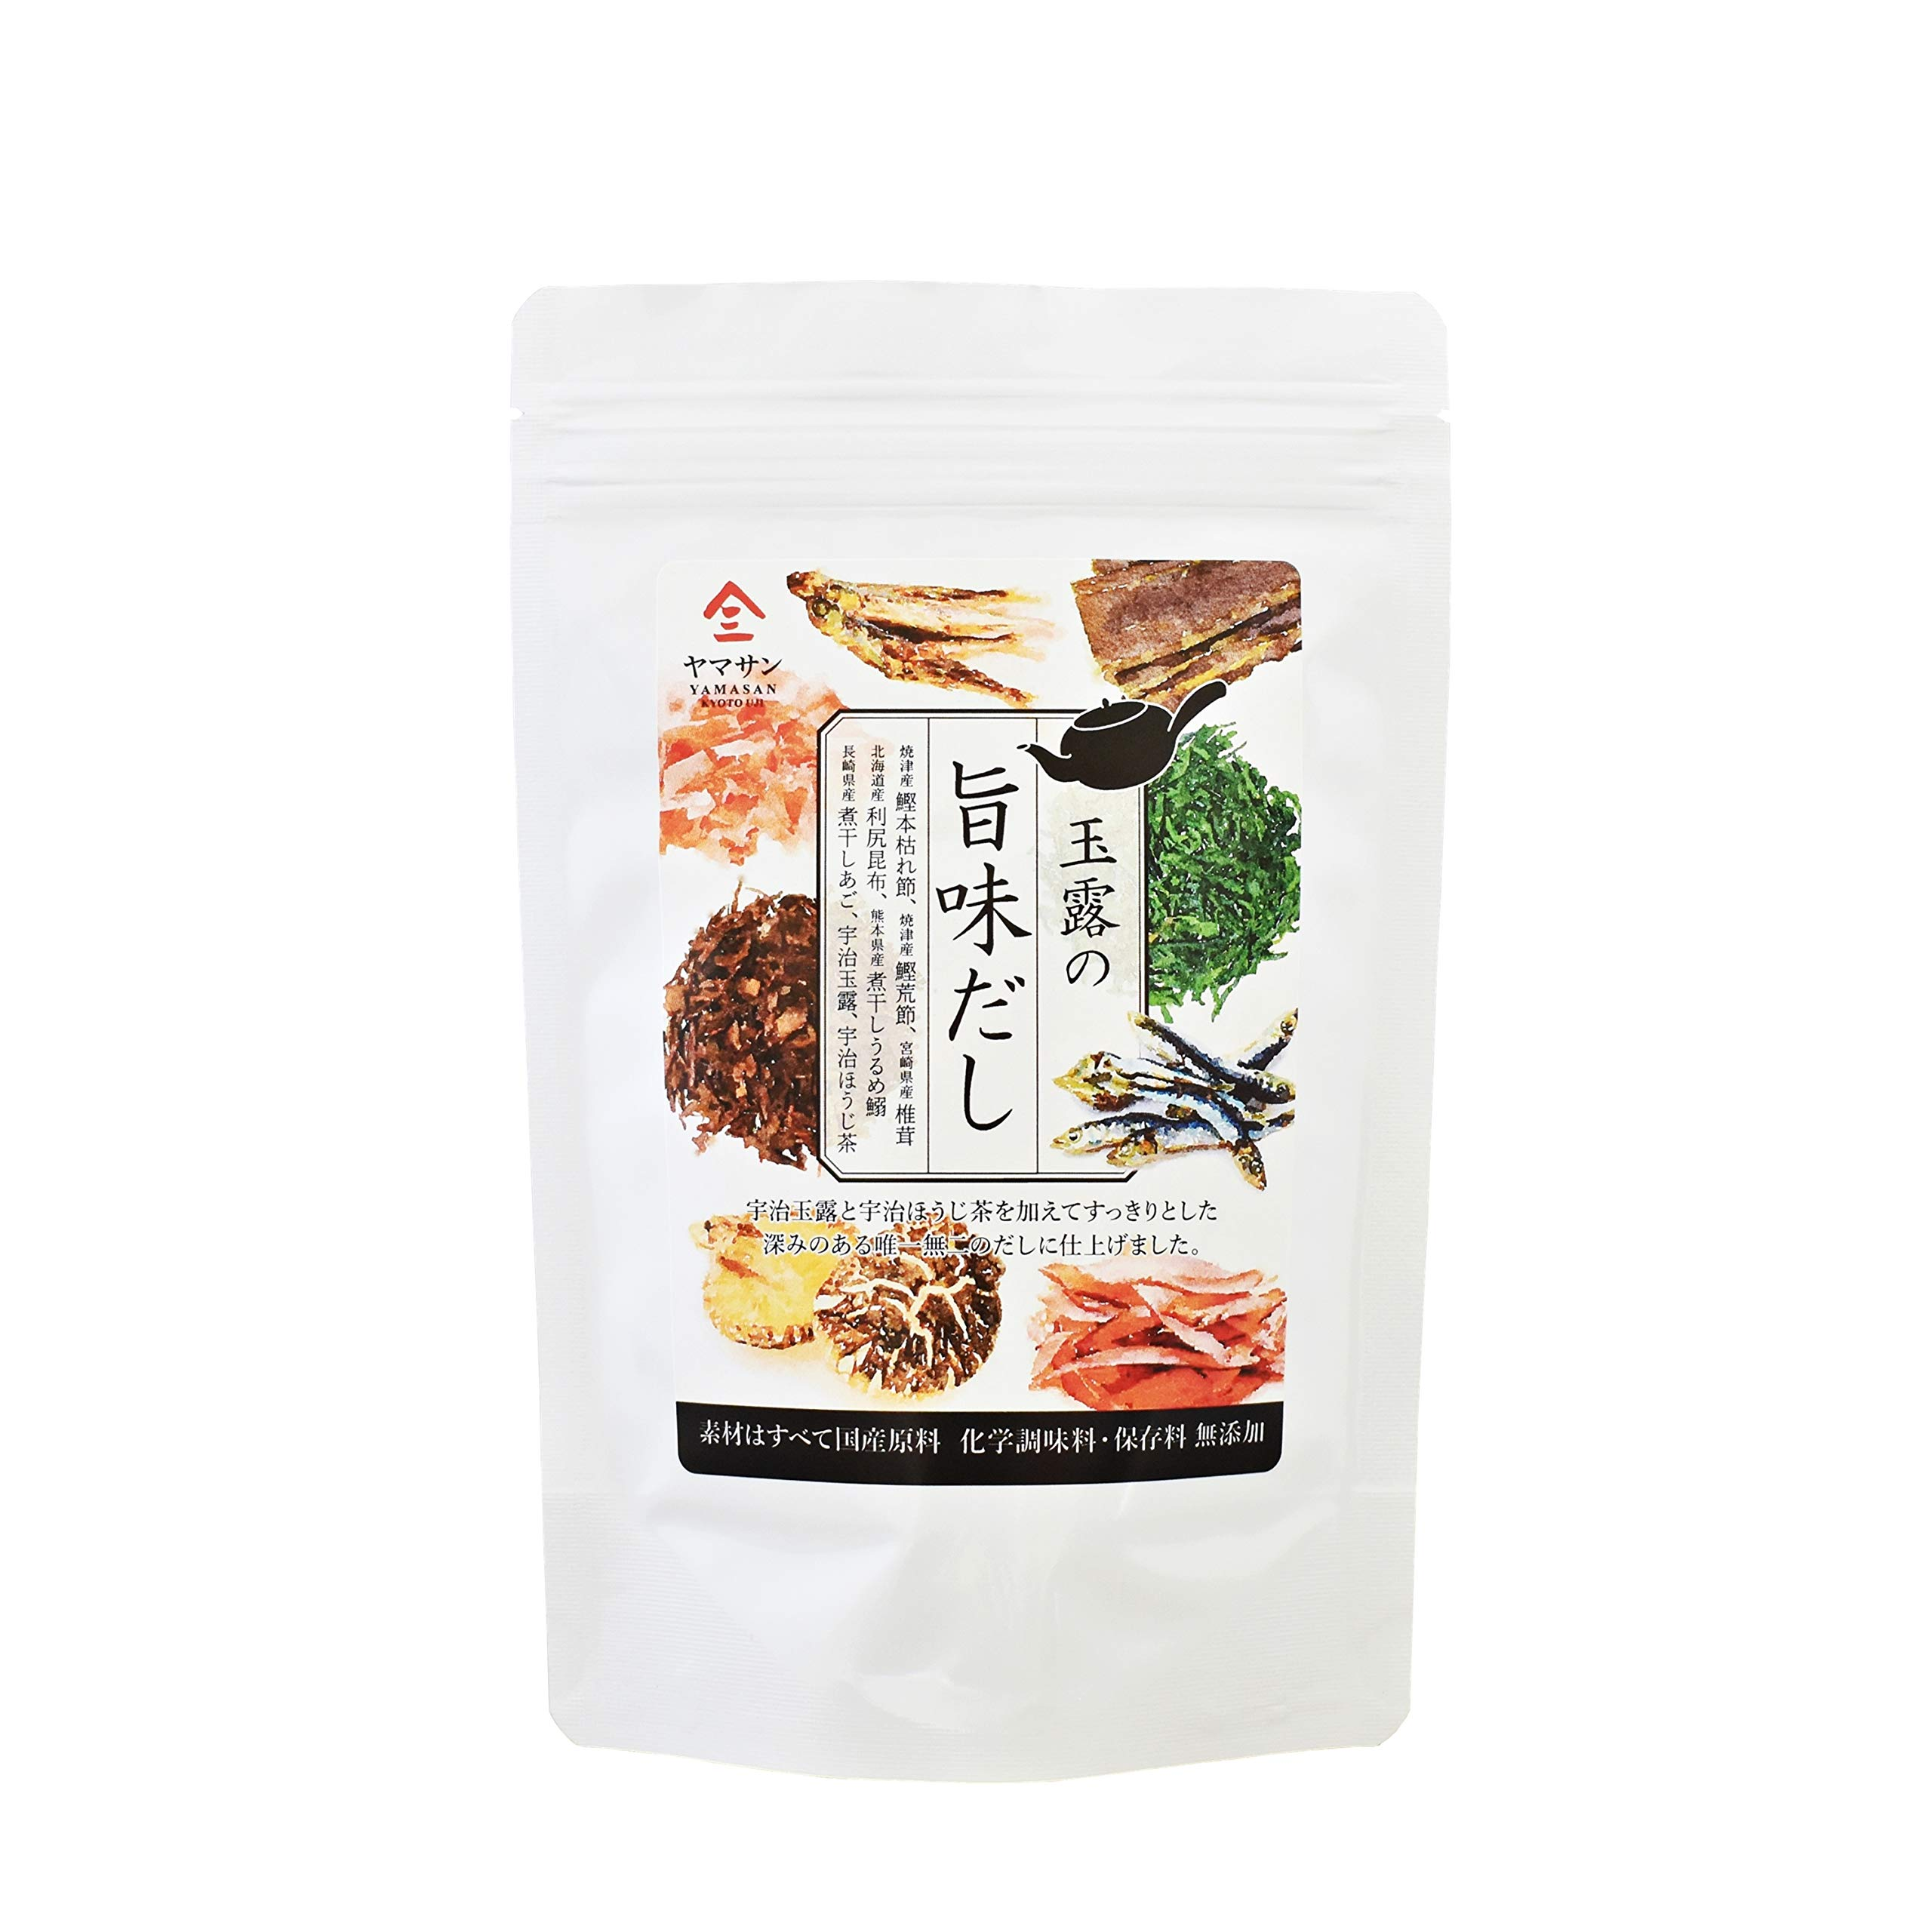 Umami dashi Soup Stock (Additive-free soup) Use 7 carefully selected ingredients from Japan [chaganju] 8g×15pacs